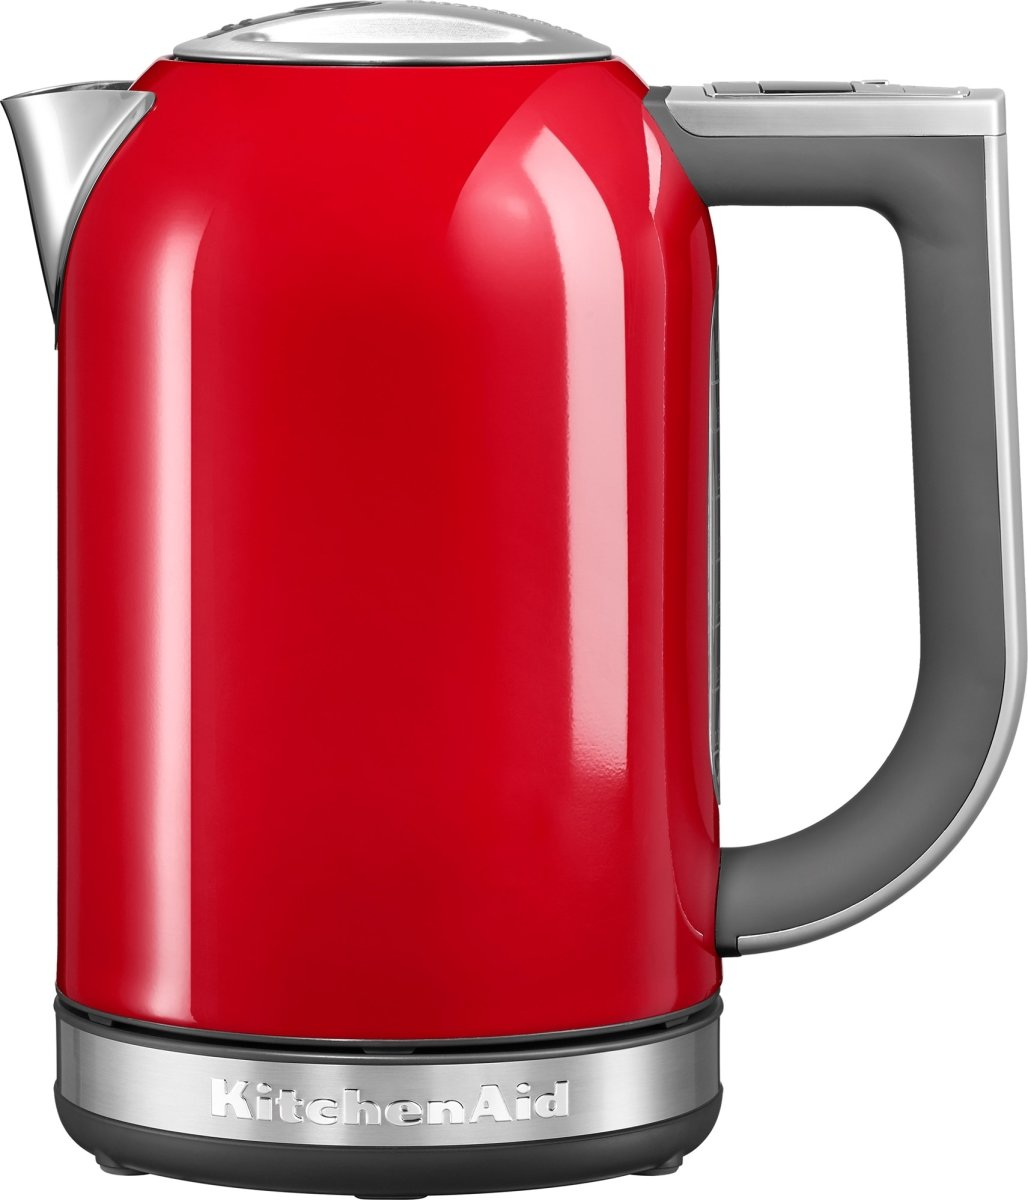 KitchenAid Elkedel, 1,7l, Rød